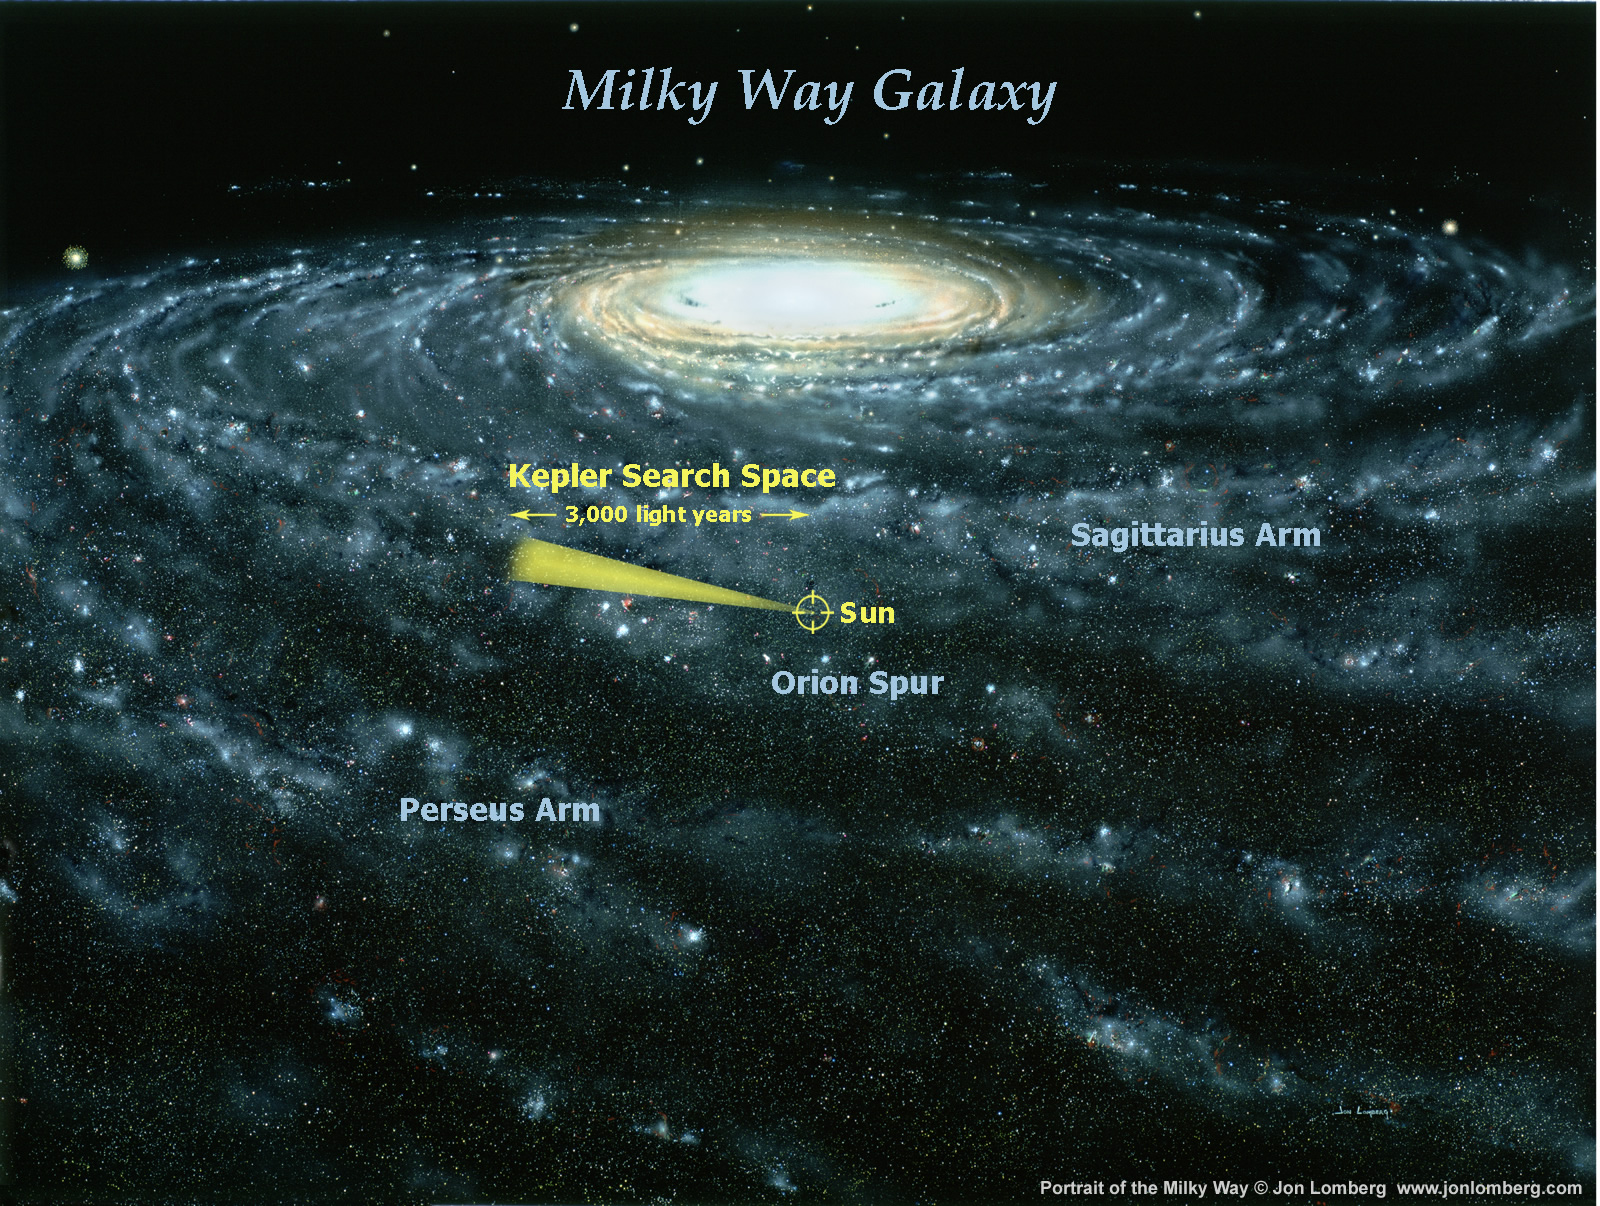 Kepler Is Our First Real Search For Planets Orbiting Other Stars The Sun Just